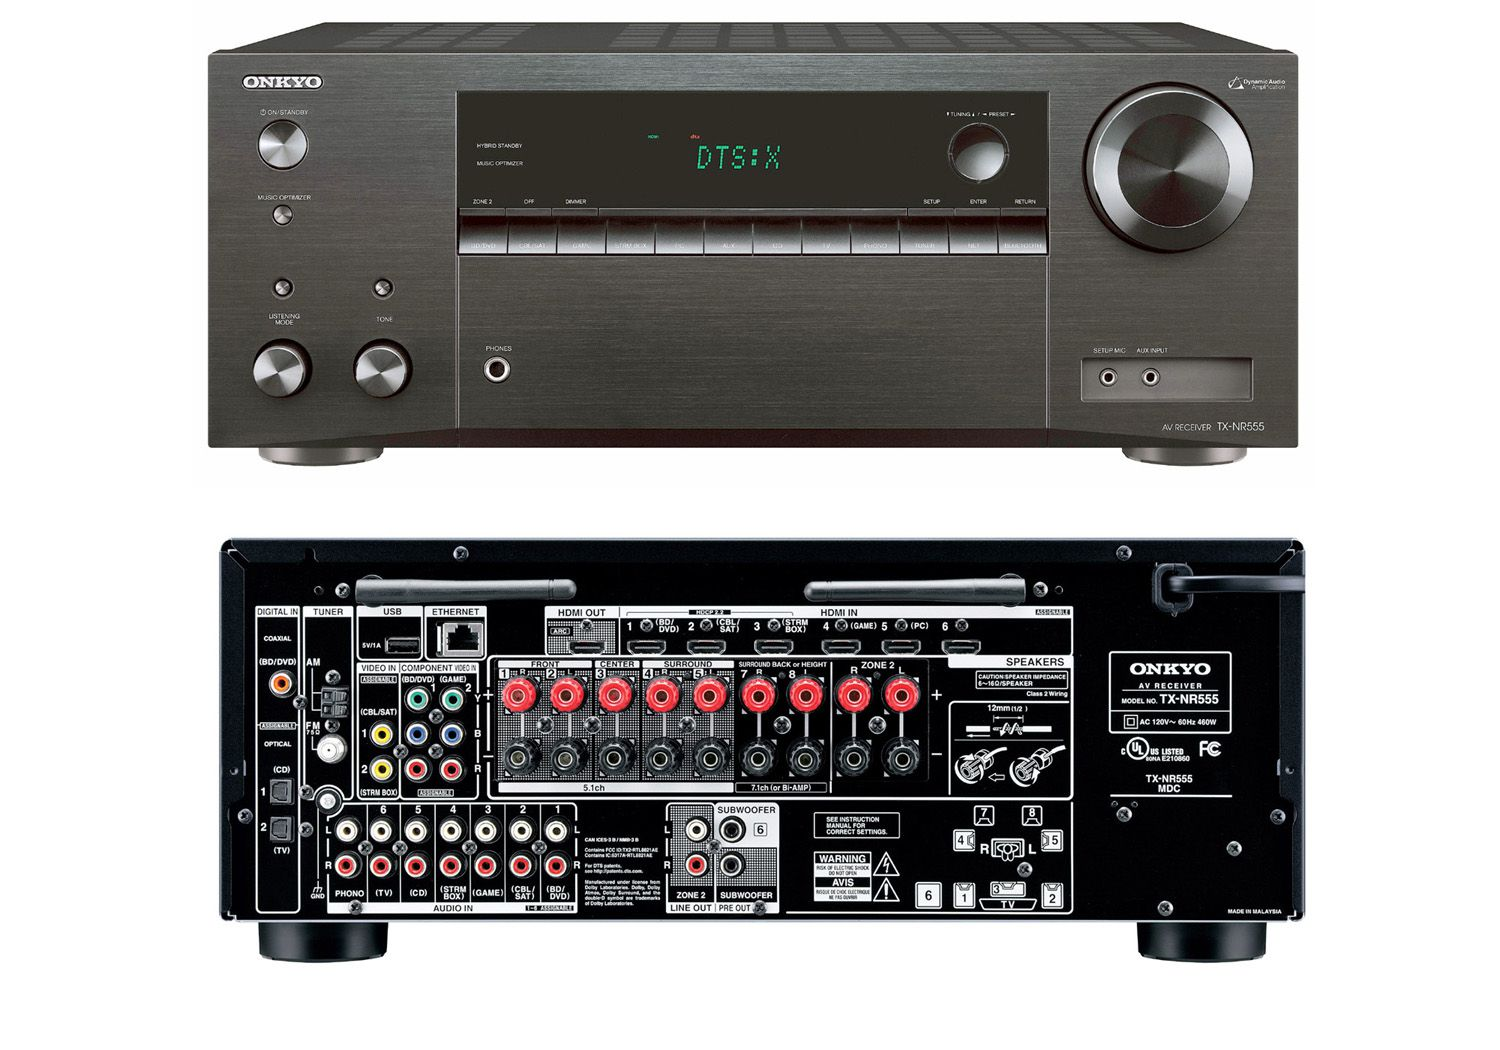 Onkyo Tx Nr555 Dolby Atmos Home Theater Receiver Review 555 Tone Generator 8 Ohm Speaker